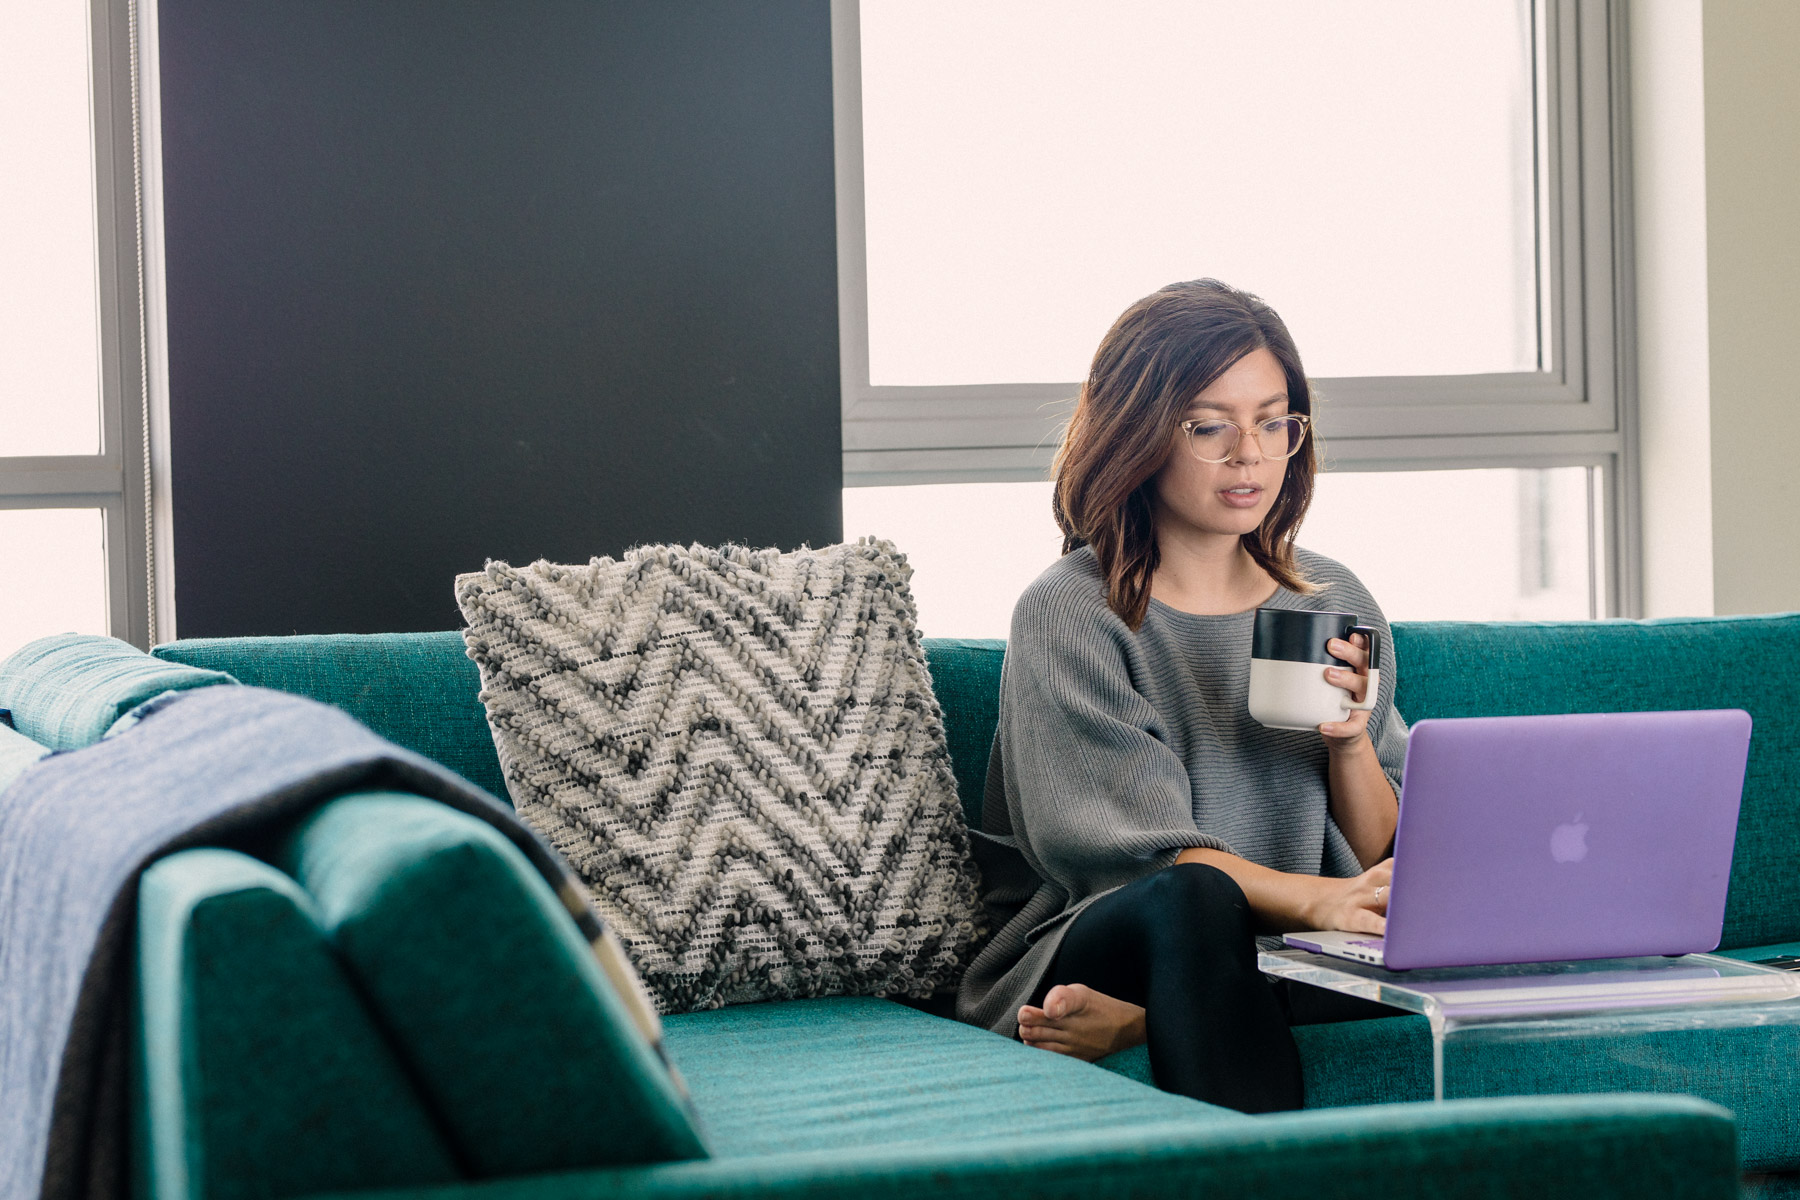 Rachel Off Duty: Woman Working From Home